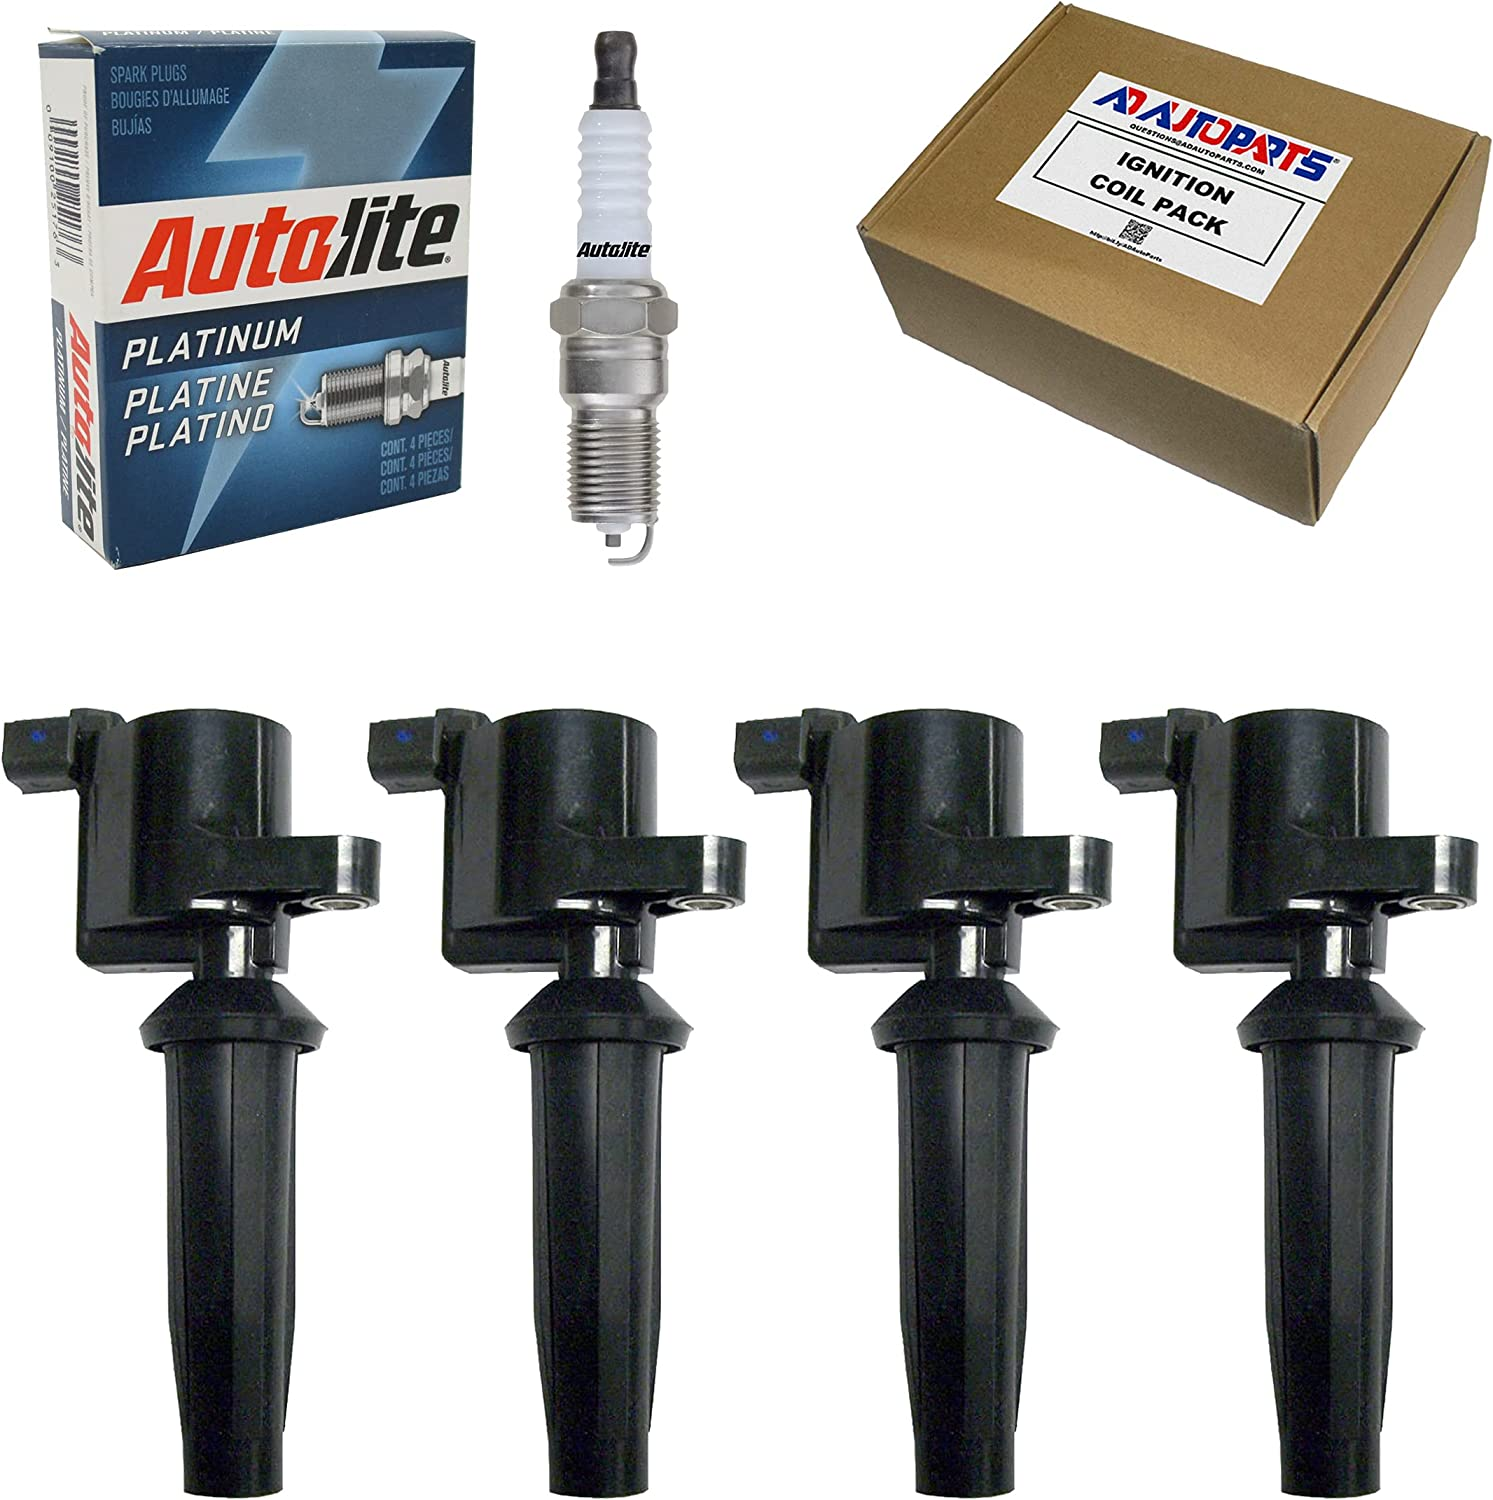 4 Ignition Coils + Autolite For Plugs Ranking TOP11 New product! New type AP104 Platinum Spark